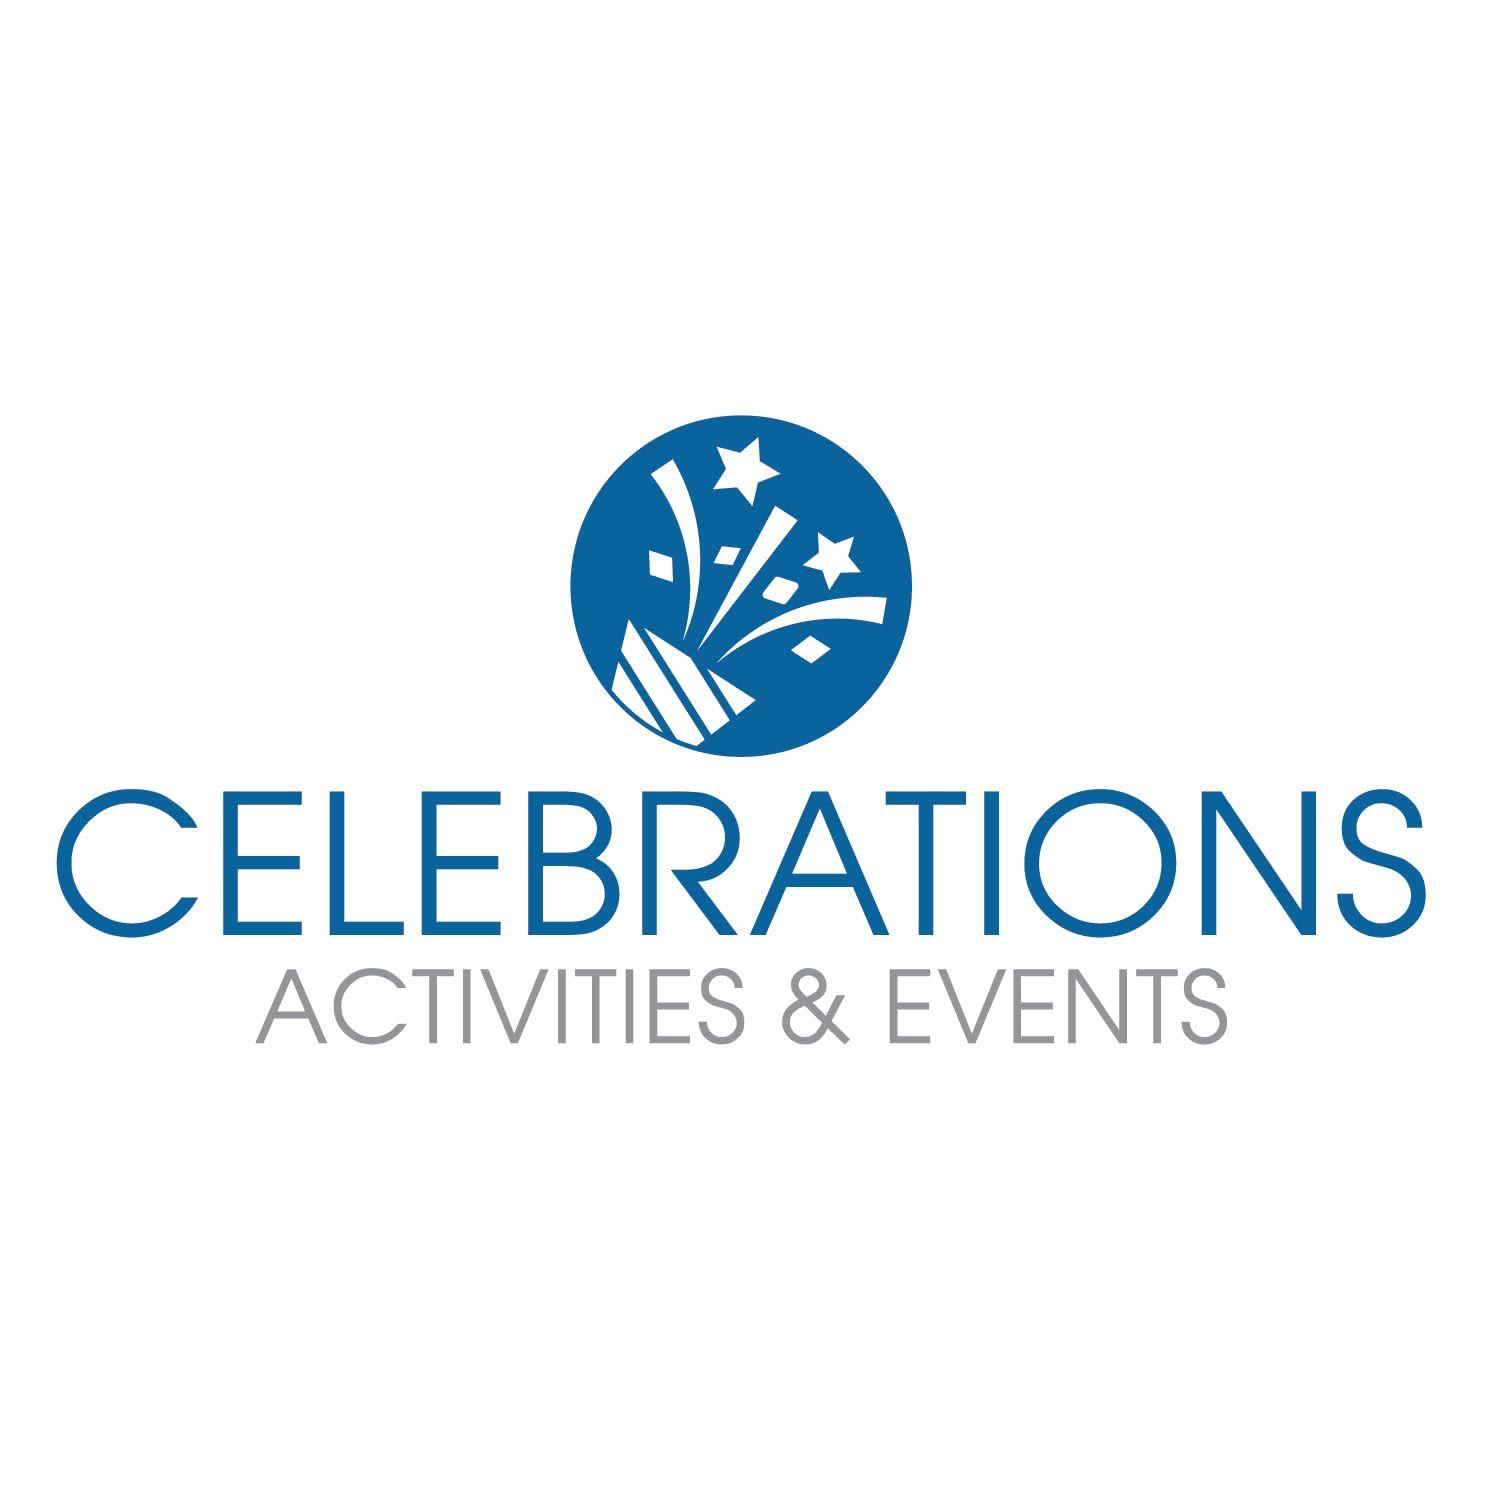 Activity and event celebrations at Discovery Village At Southlake in Southlake, Texas